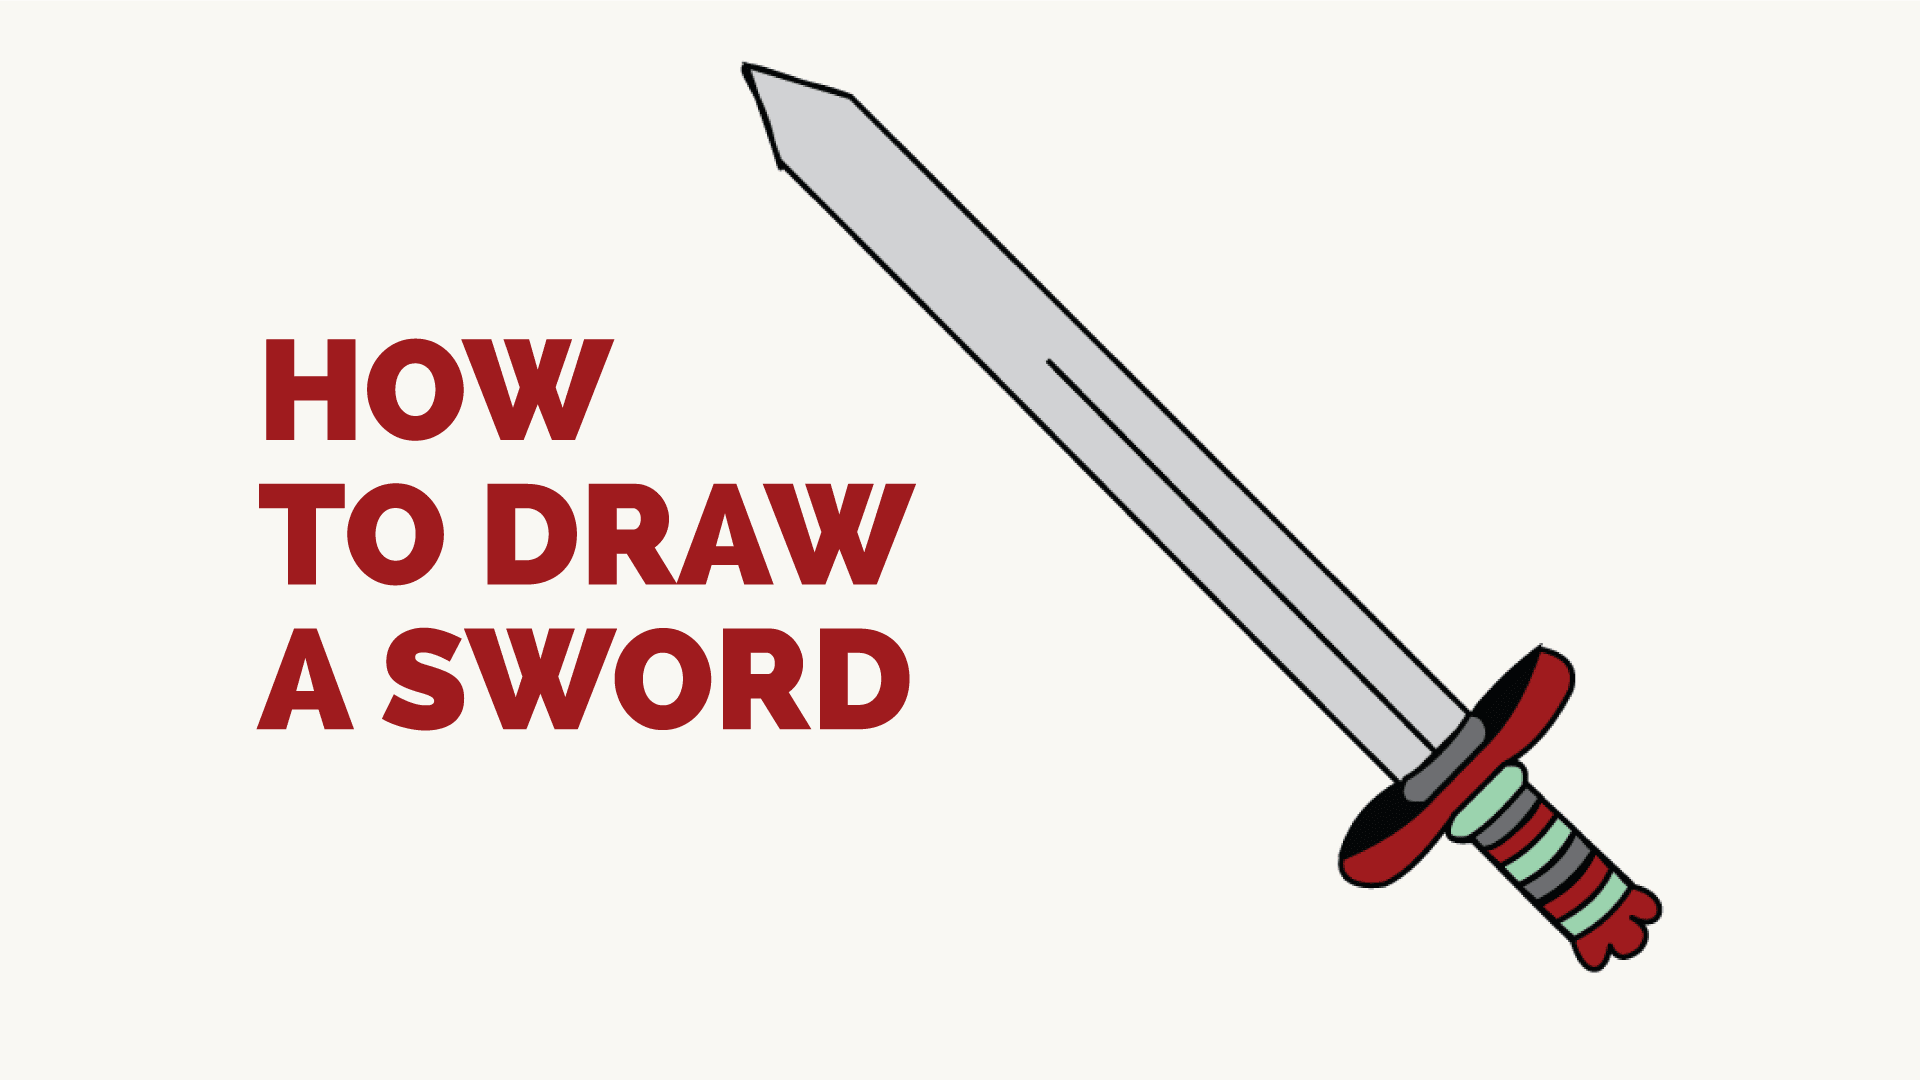 How to draw a sword 40